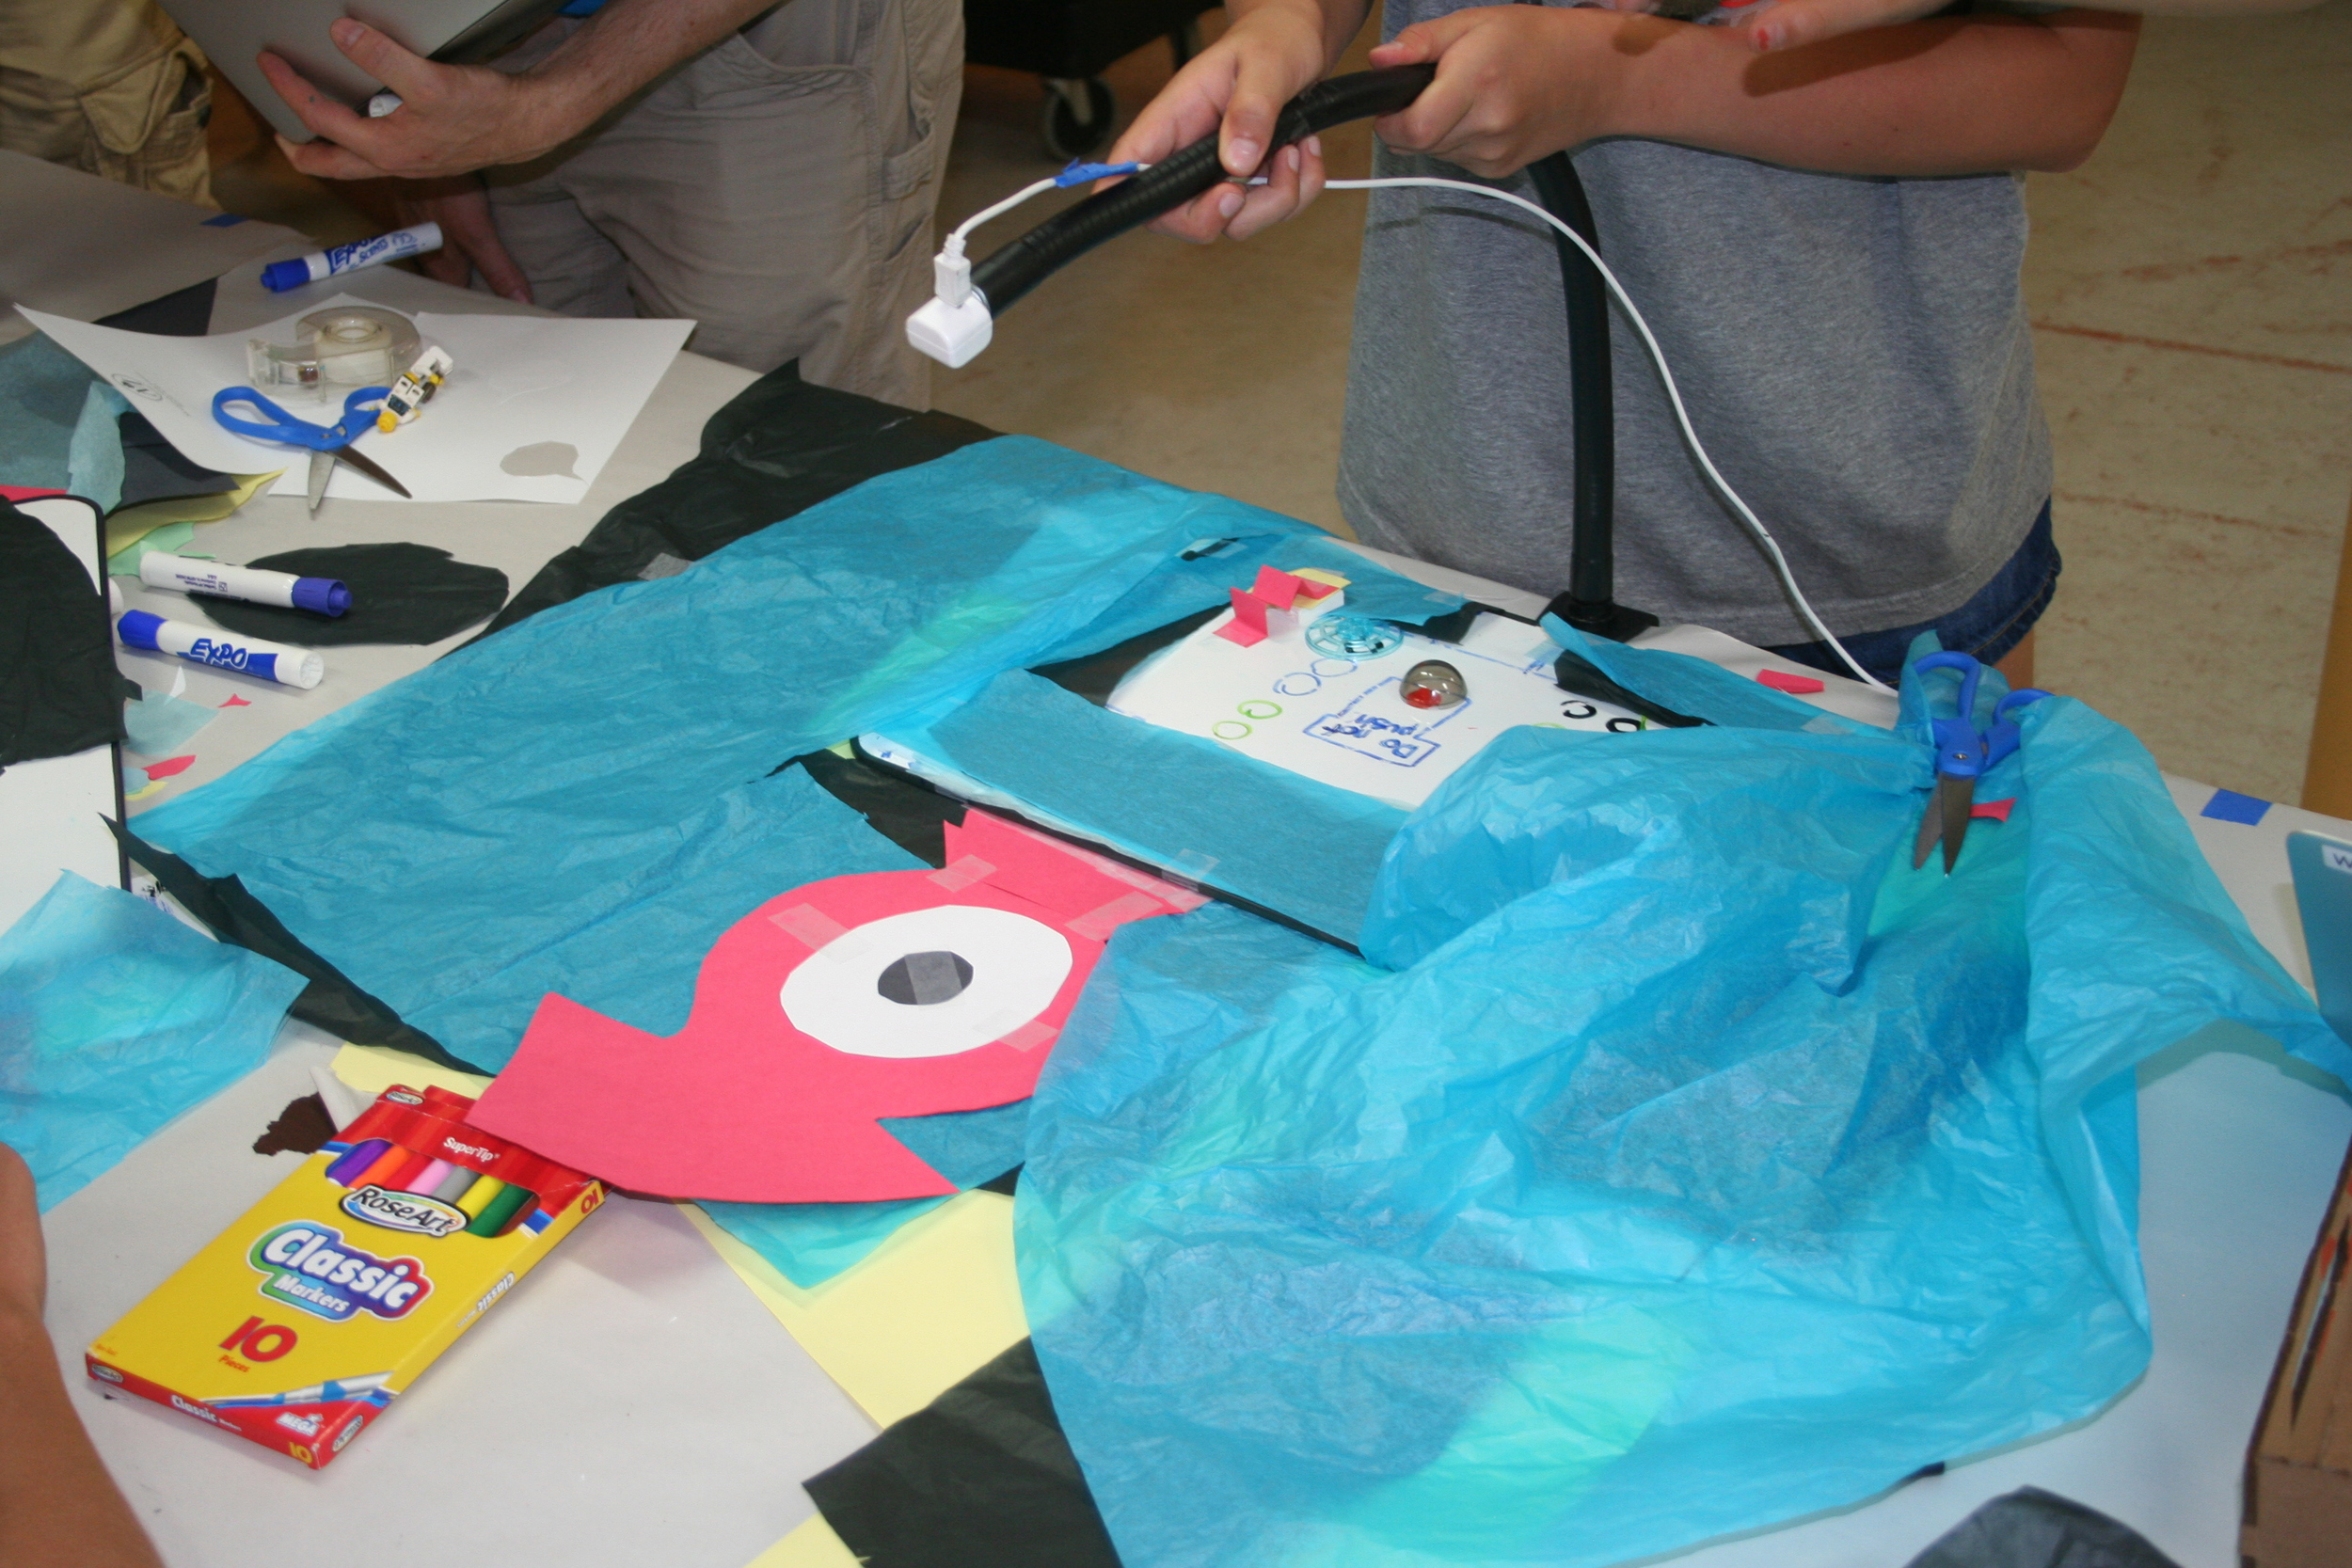 Stop-Motion Film:  With some arts and crafts supplies and a camera, you can make your very own animation film.